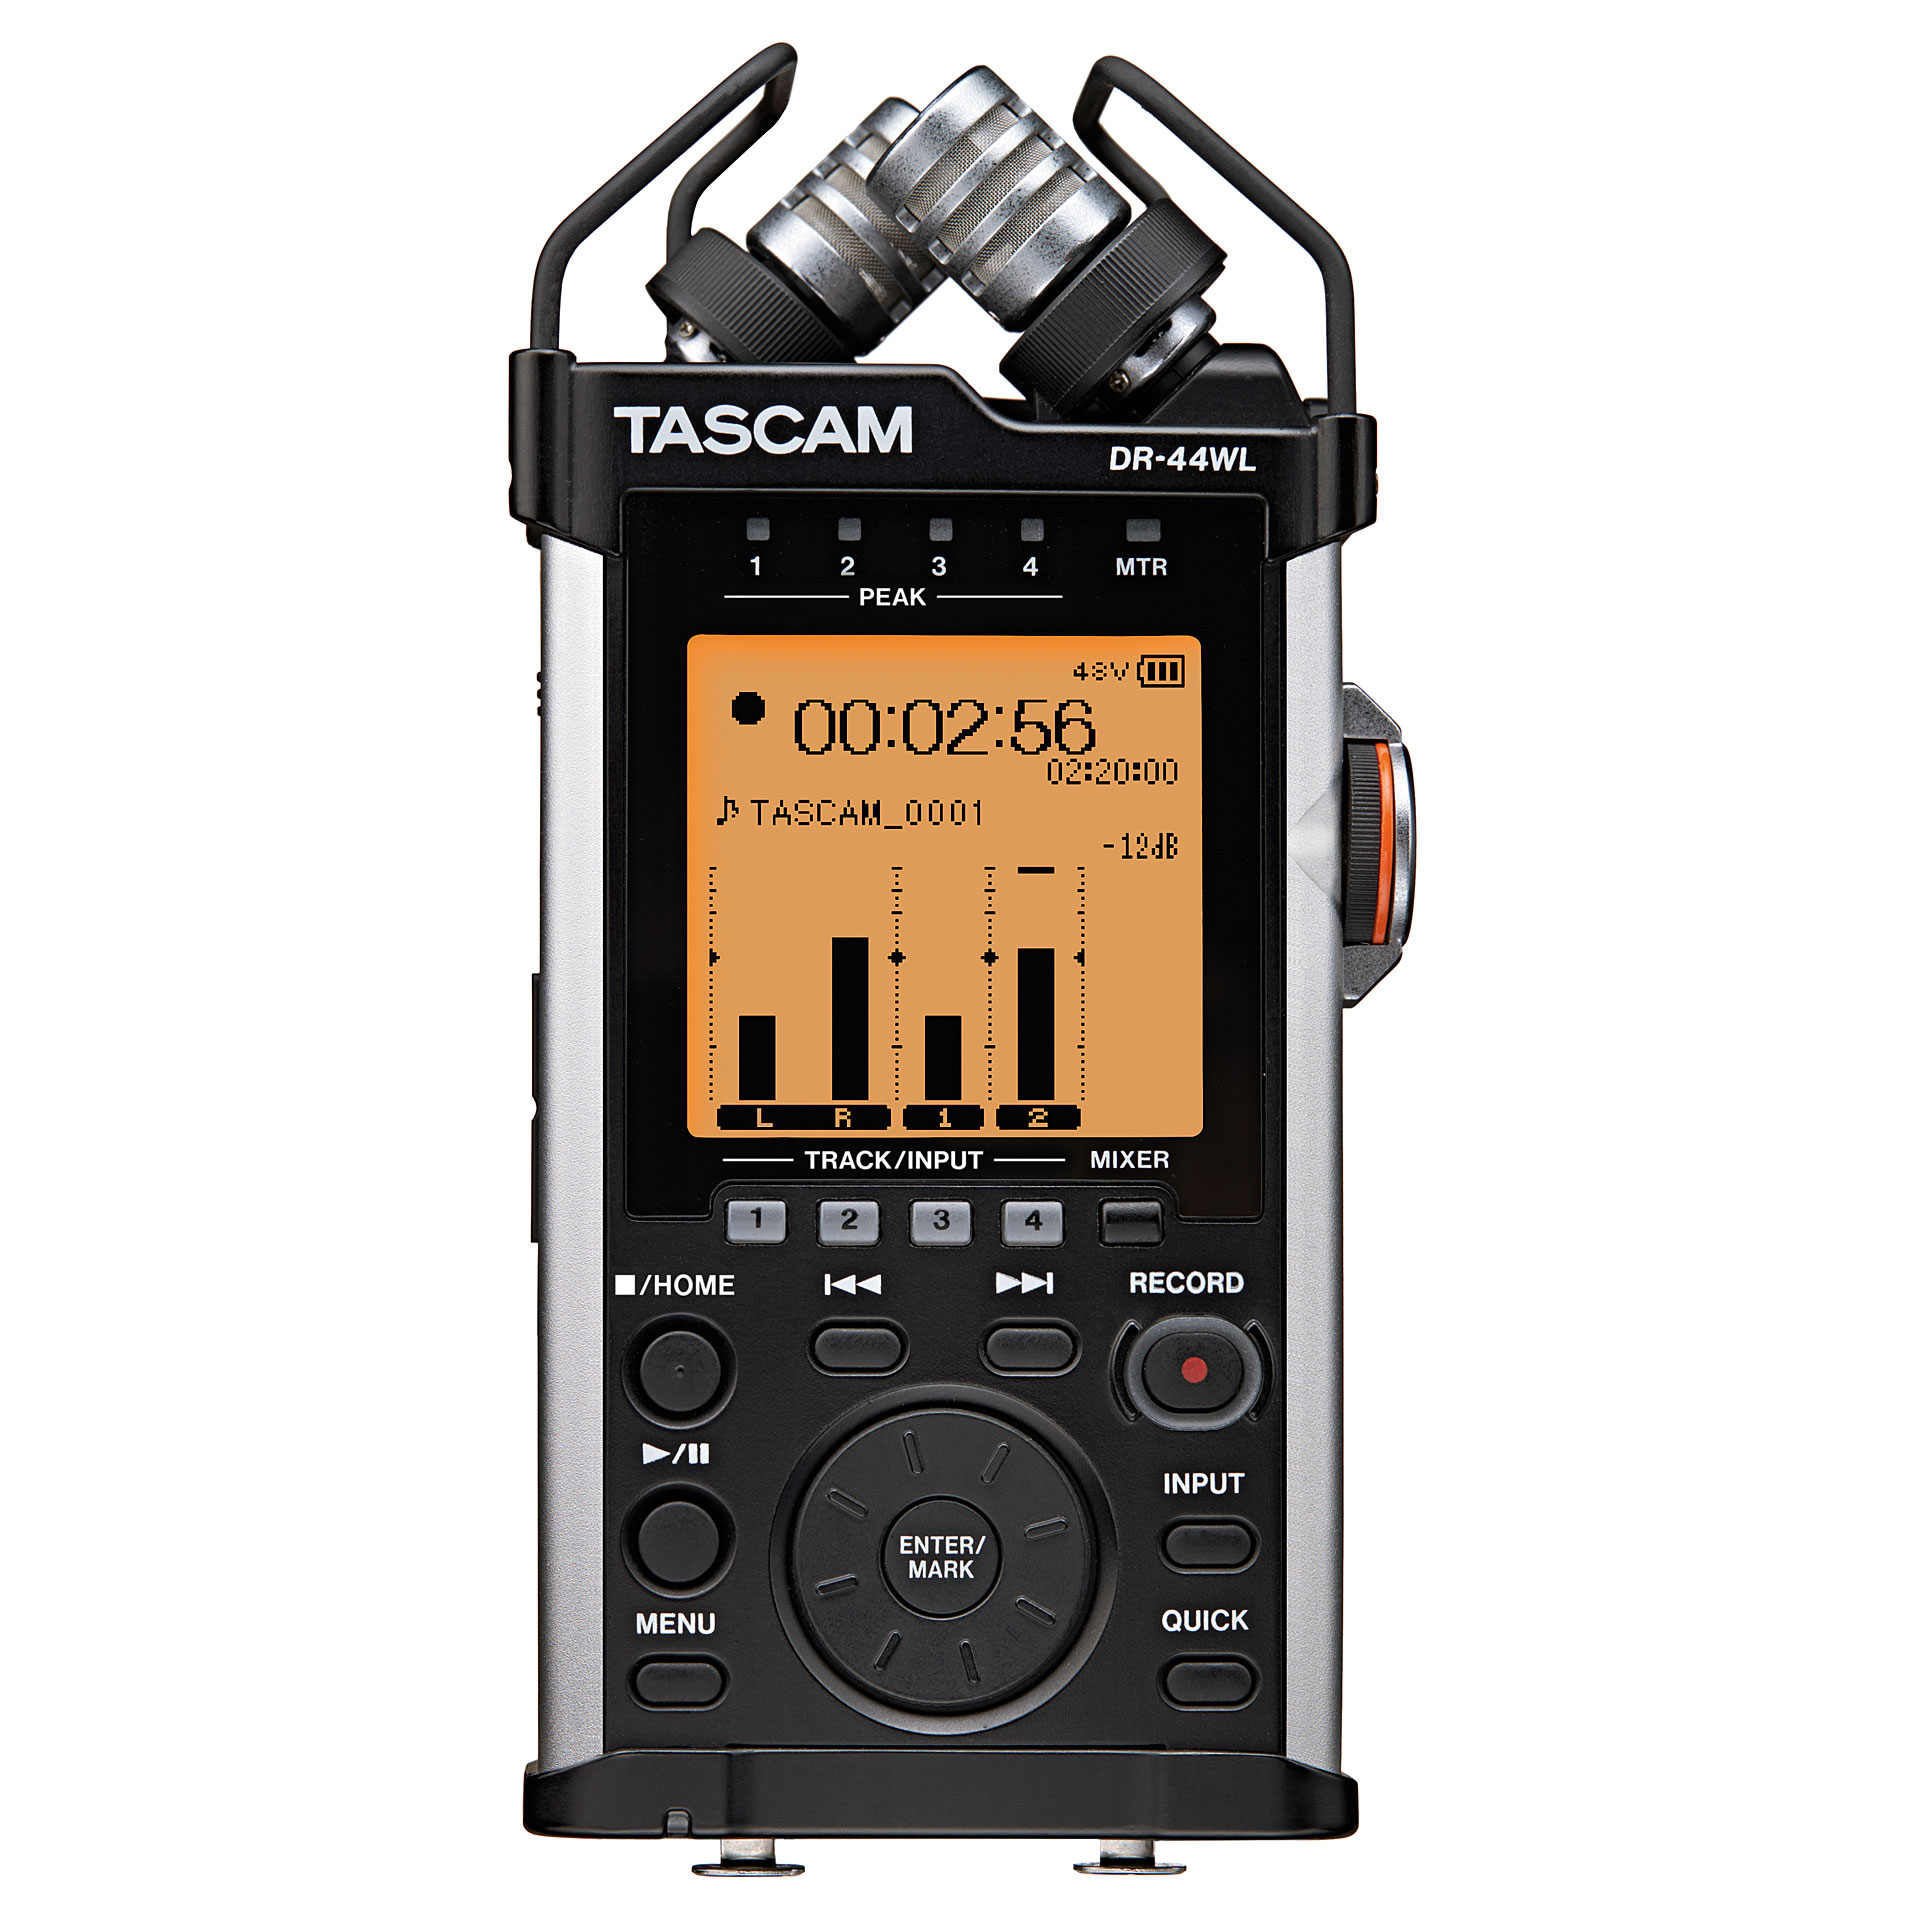 tascam-dr-44wl-recorder-with-wifi.jpg